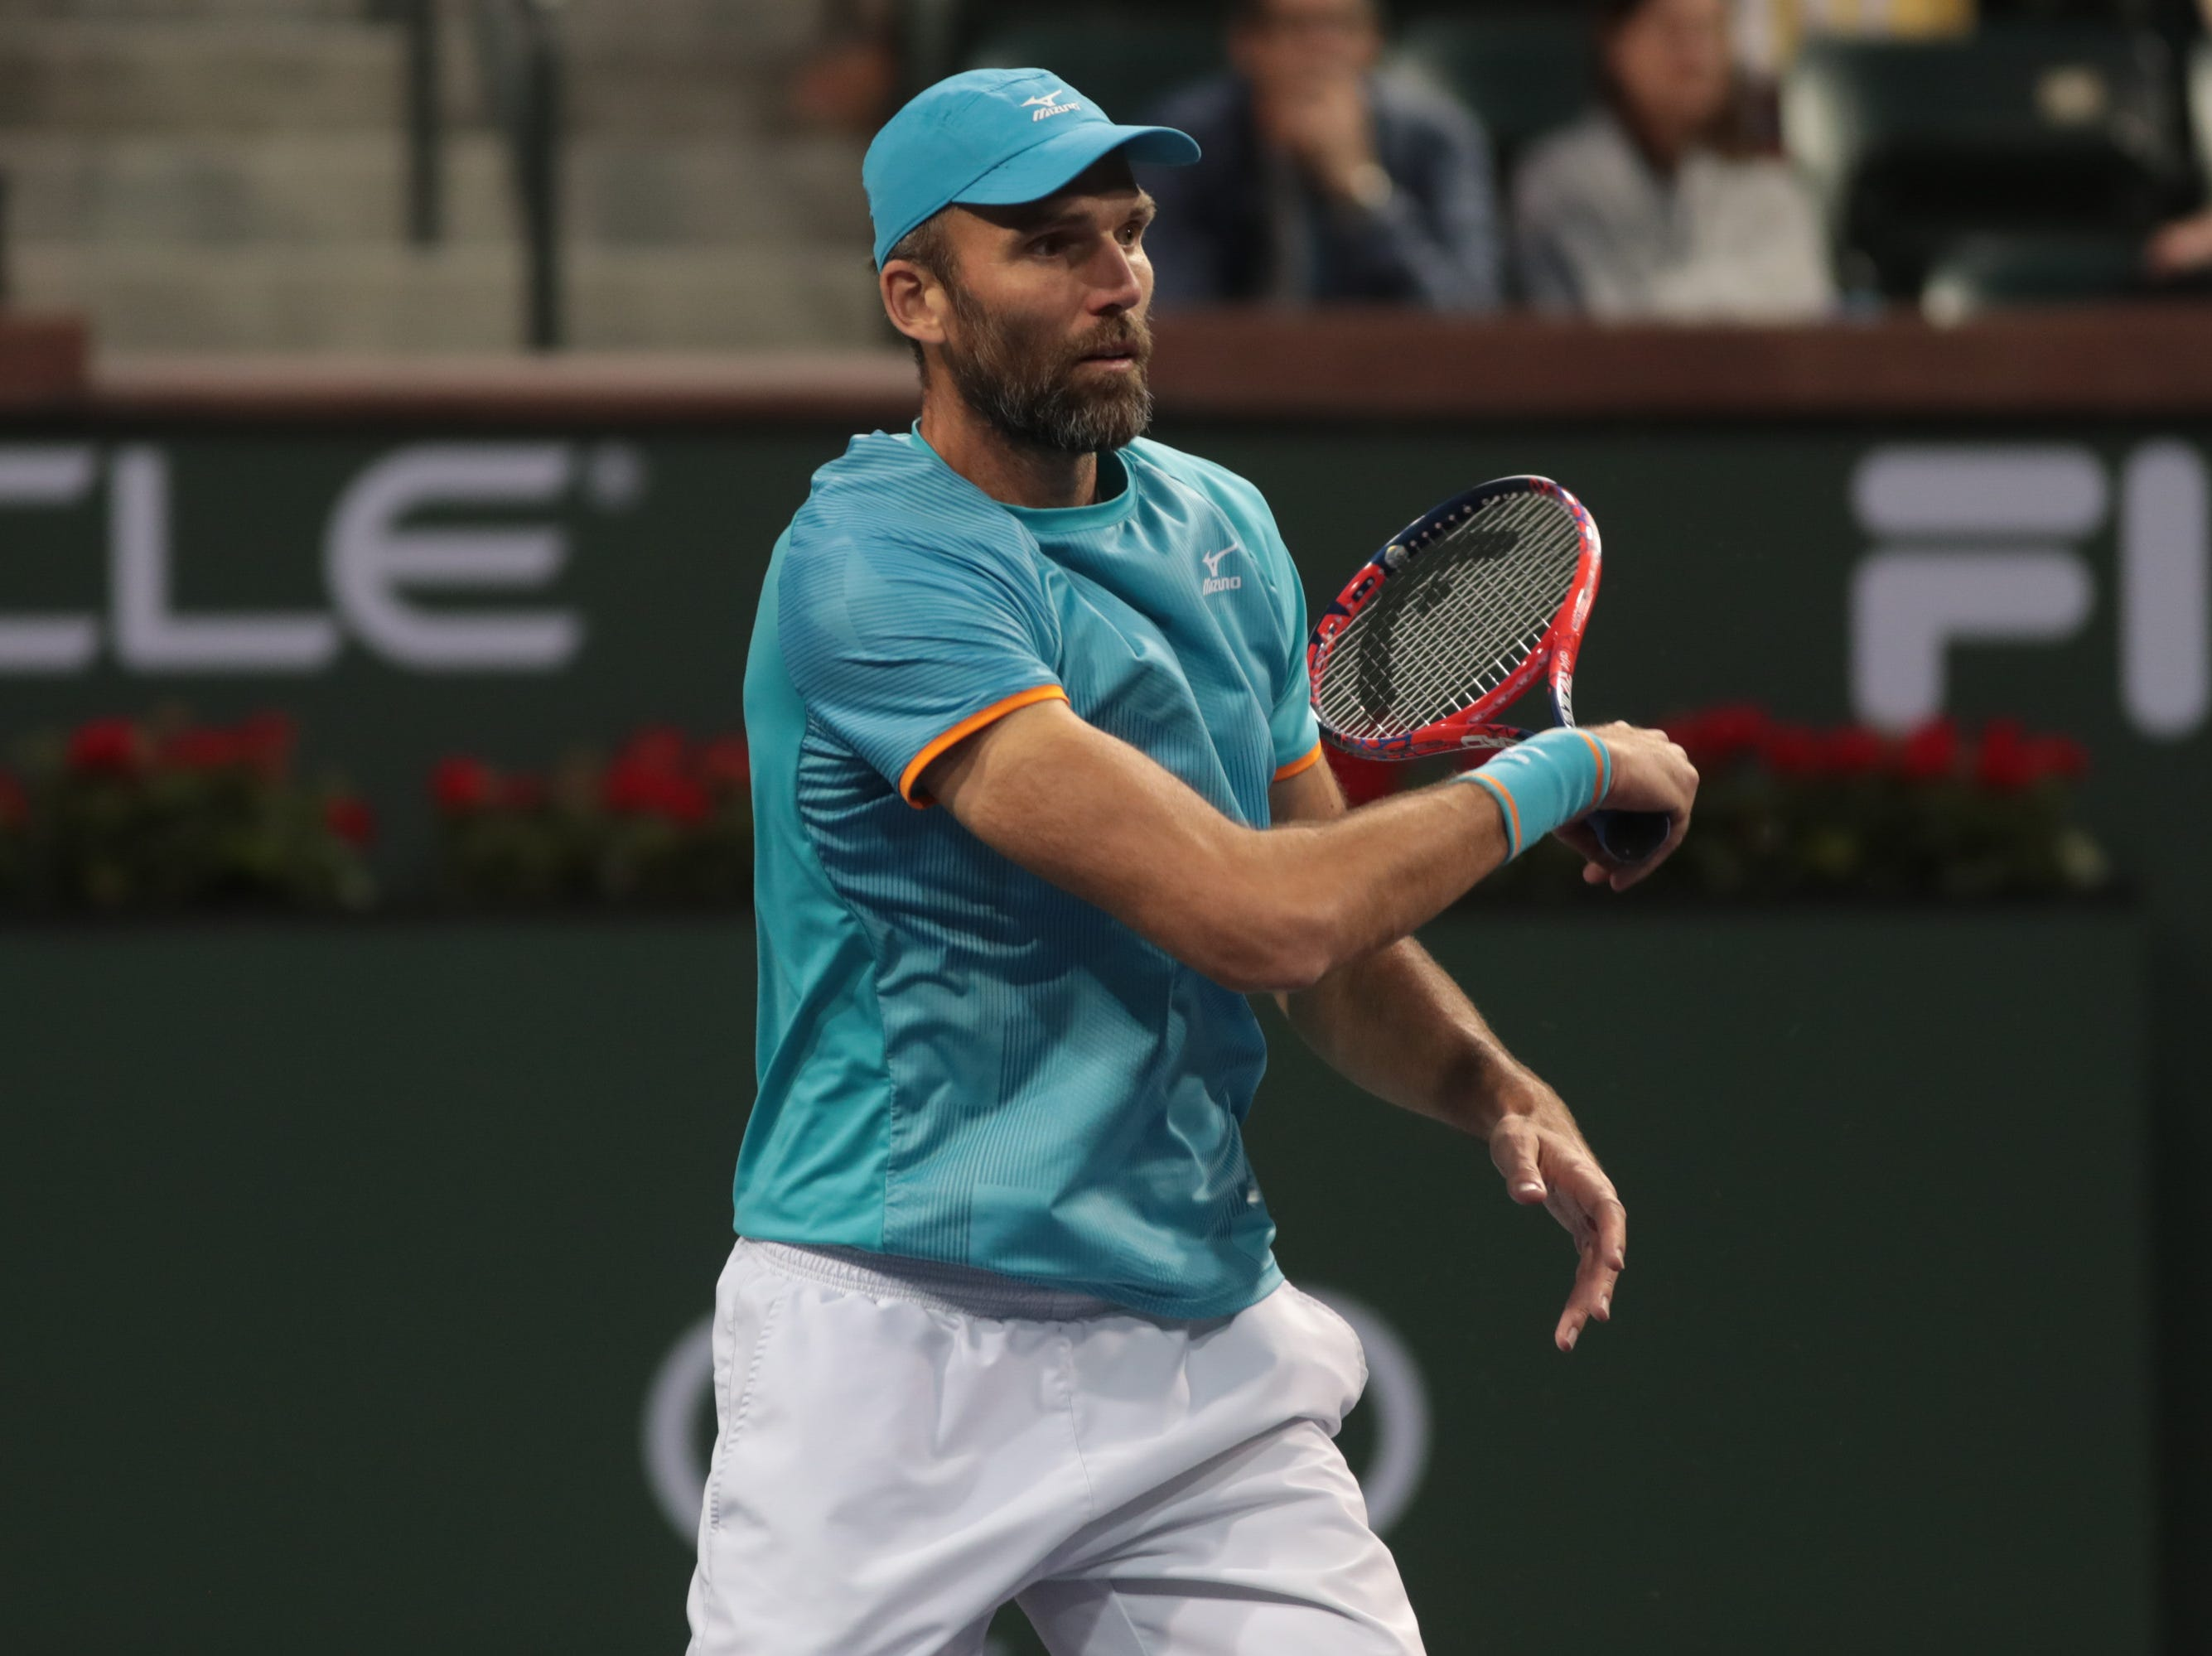 Ivo Karlovic hits a plays Dominic Thiem in the Round of 16 at the BNP Paribas Open in Indian Wells, Calif., March 13, 2019.